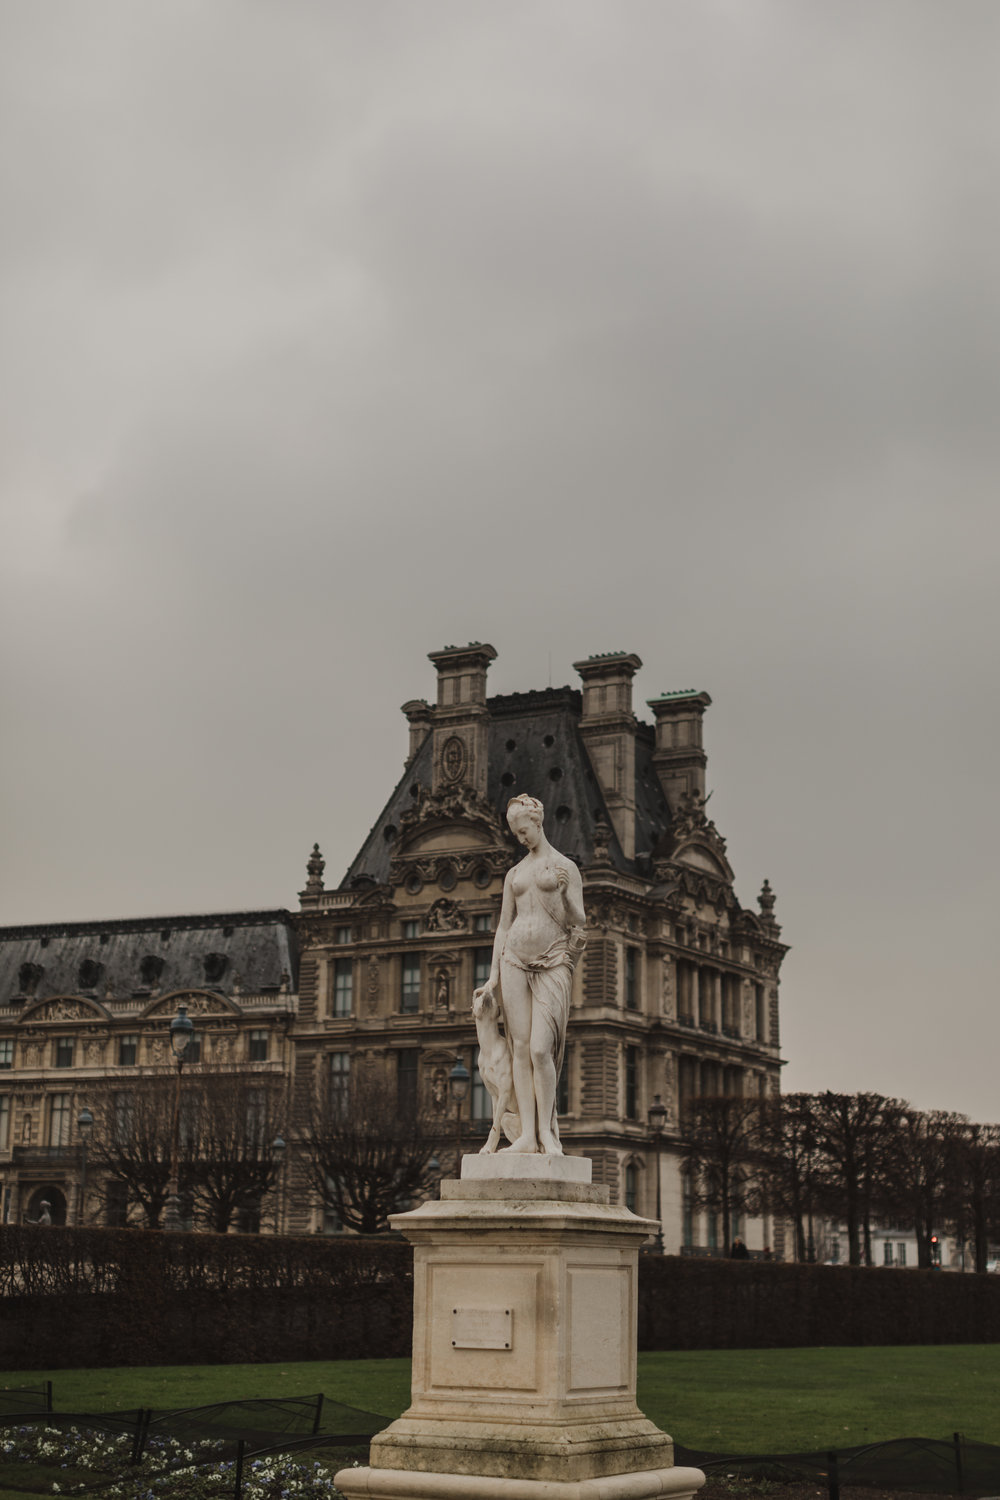 In the Jardin des Tuilieries